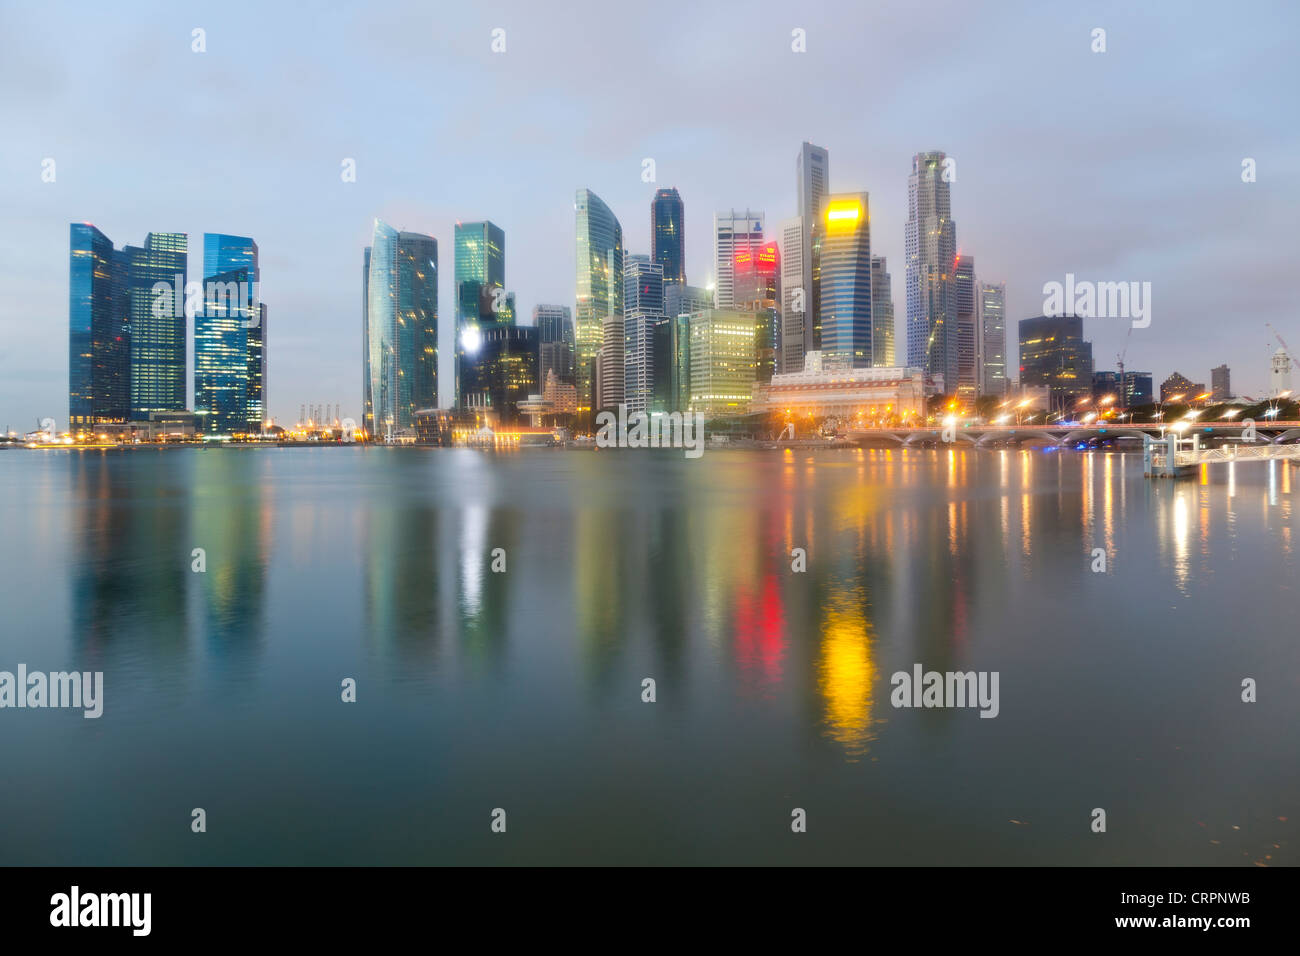 South East Asia, Singapur, Skyline der Stadt, Blick über die Marina Bay, Finanz und Wirtschaft von Singapur Stockbild